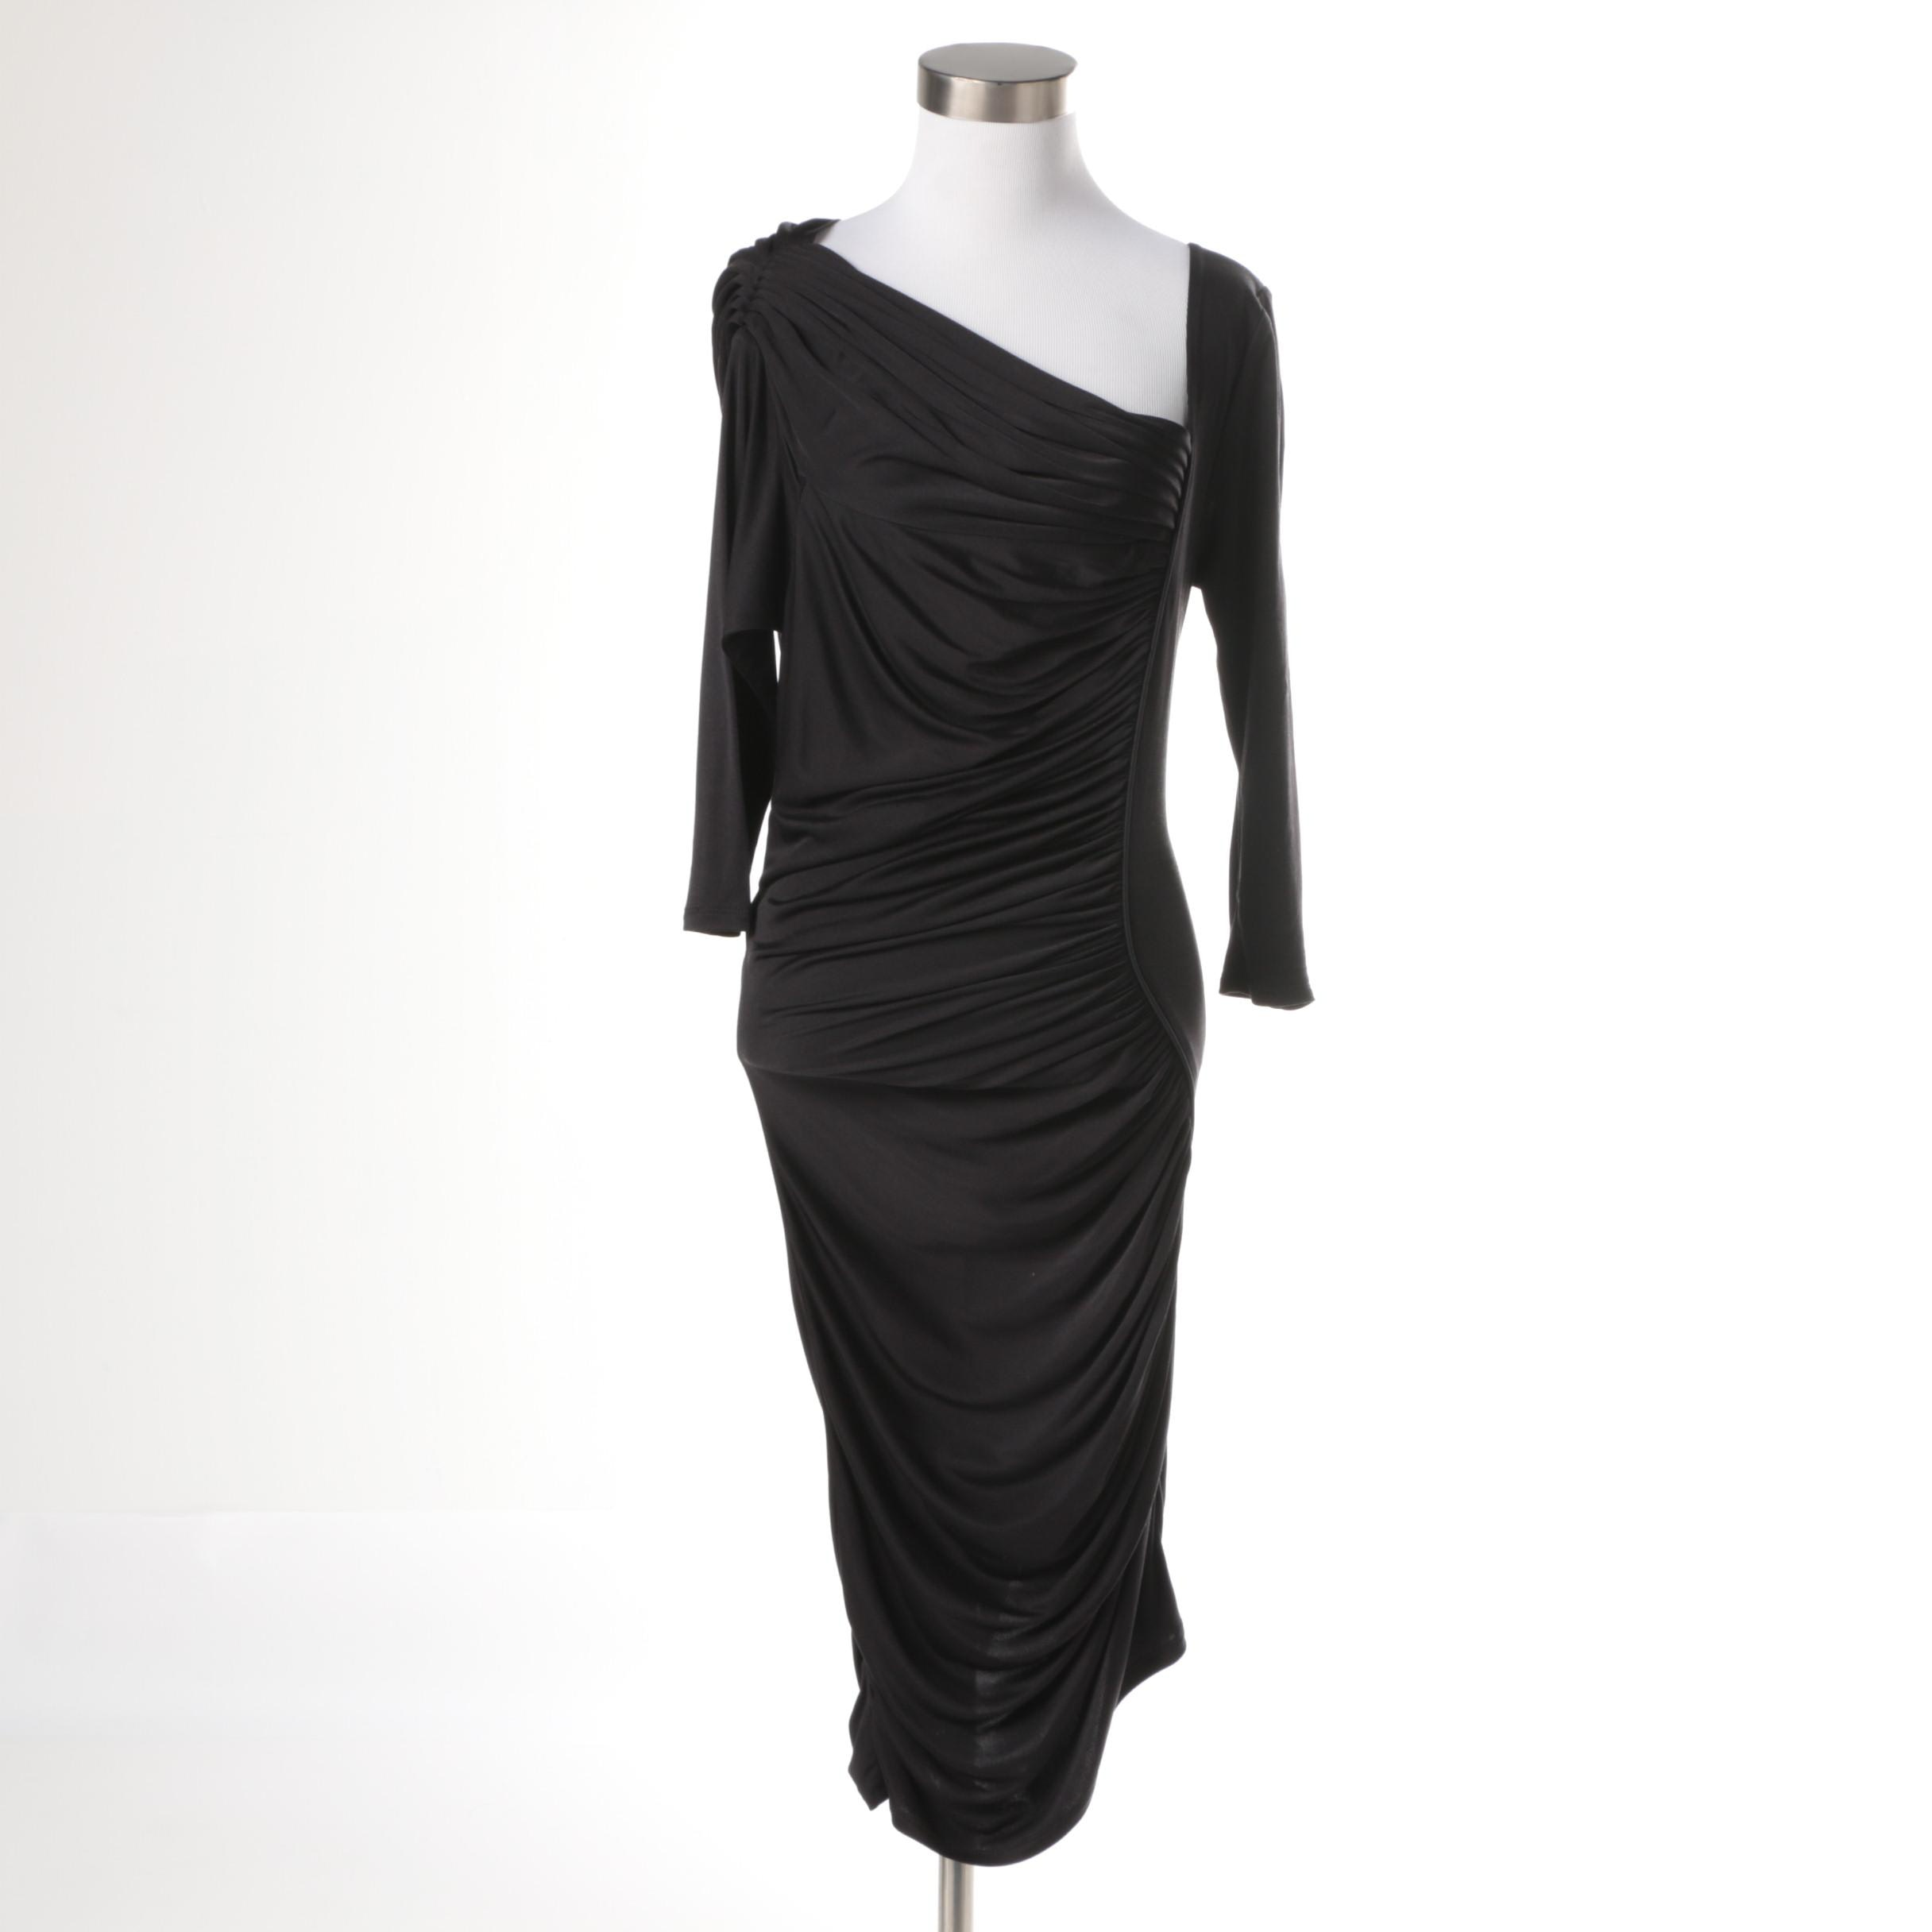 Catherine Malandrino Black Silk Evening Dress